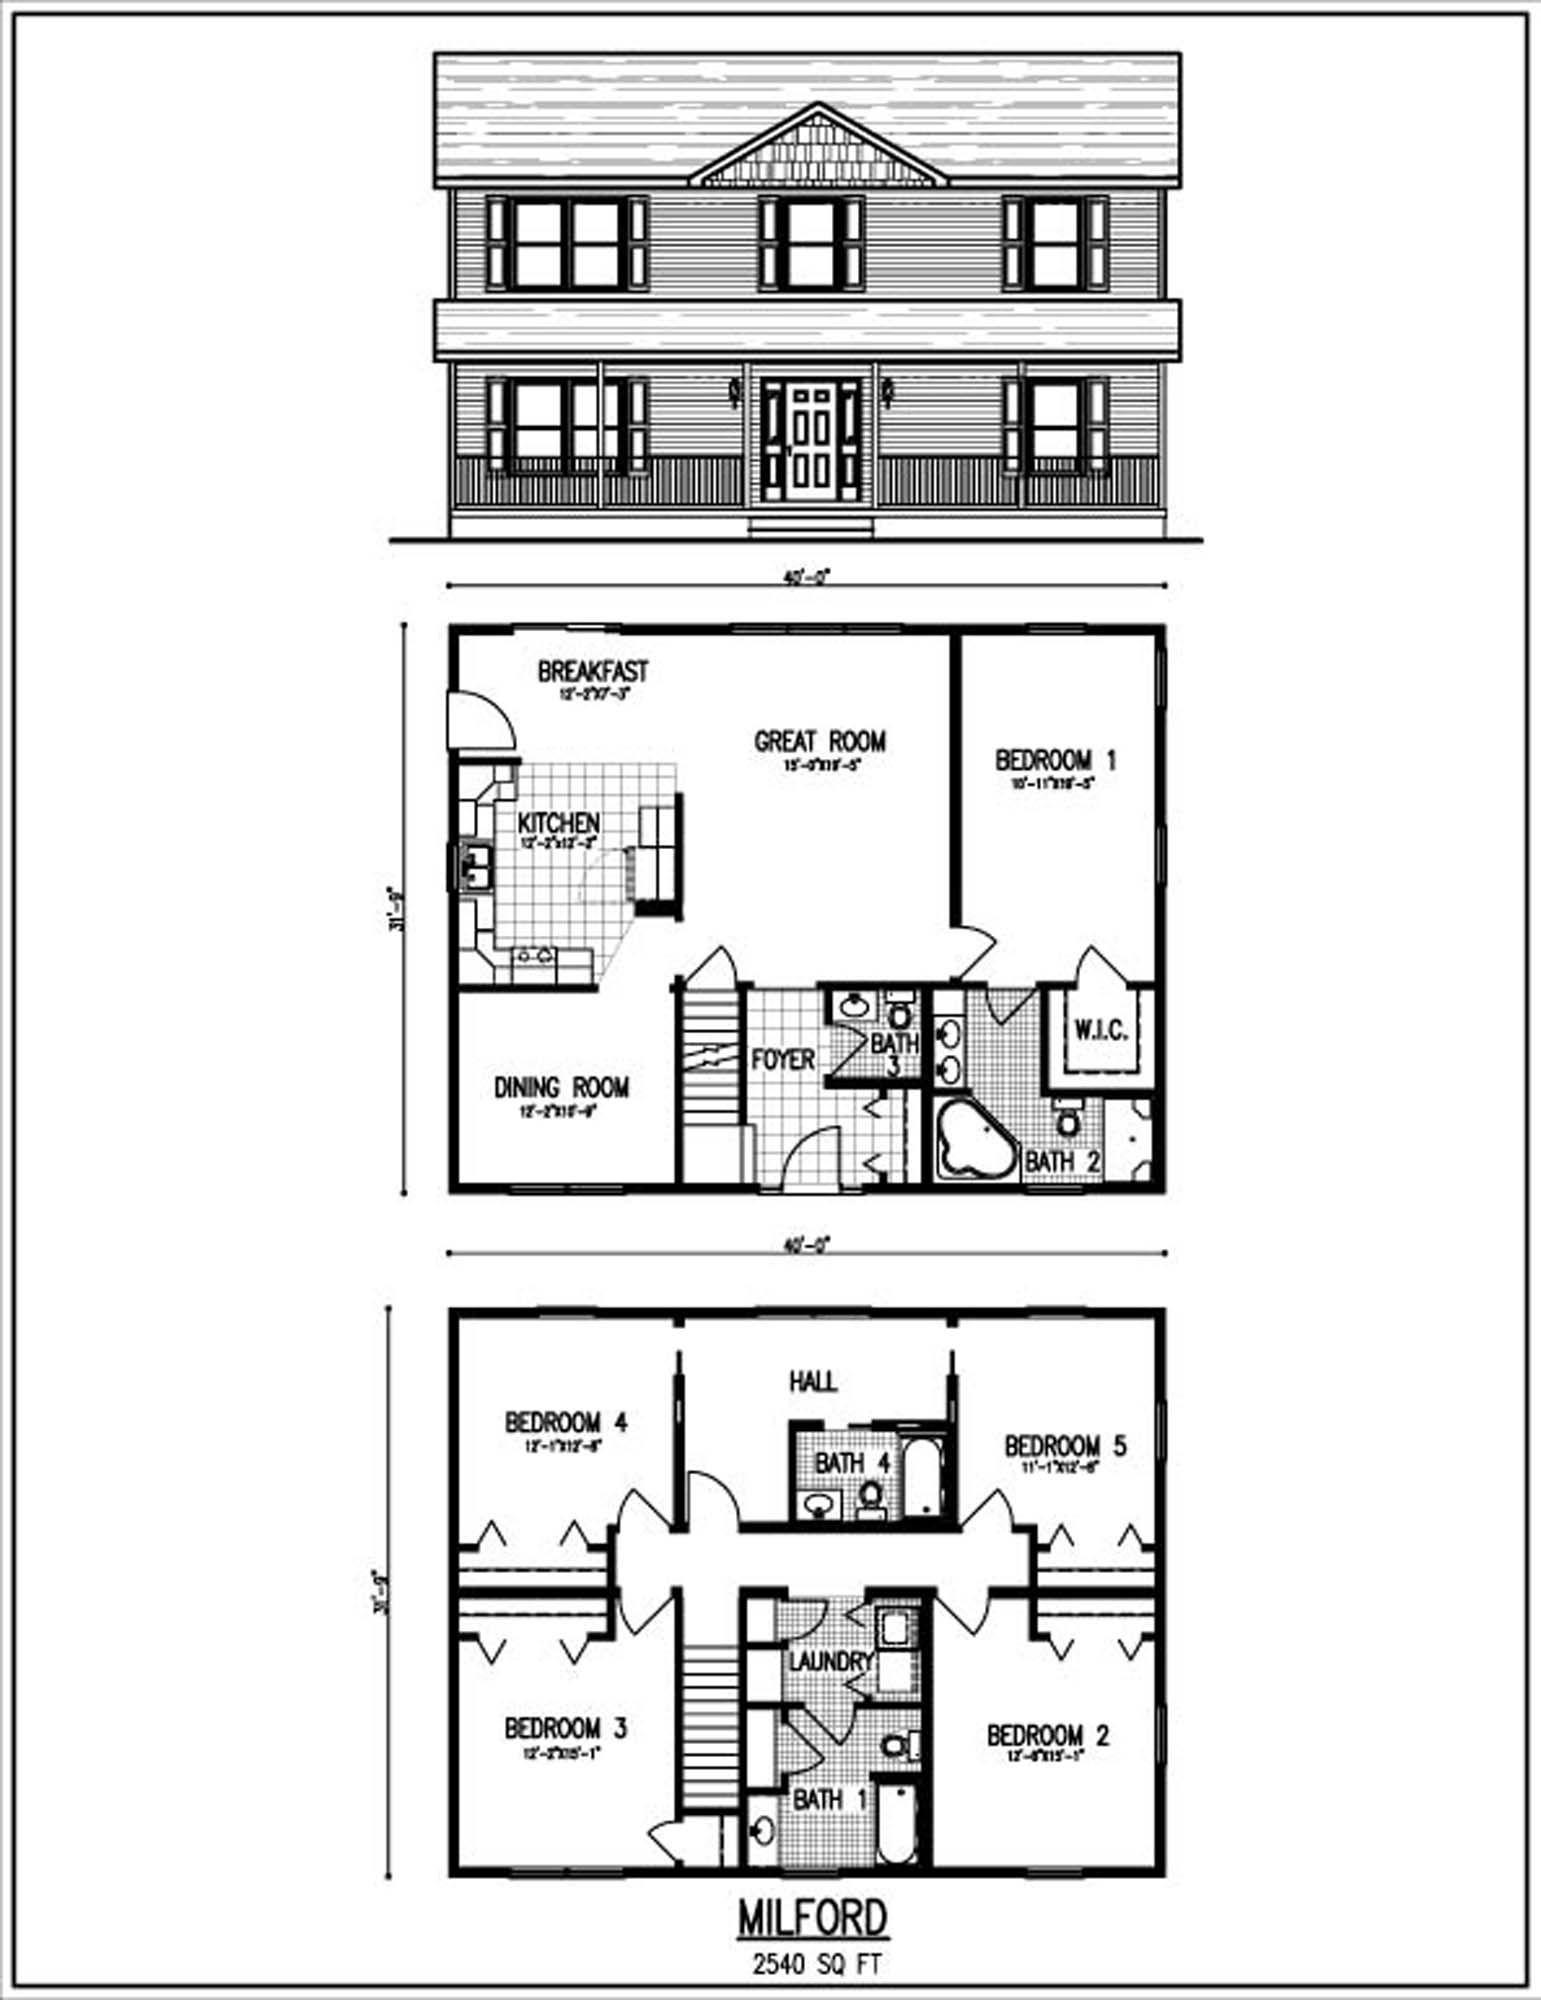 beautiful 2 story house plans with level floor plan mewe floor plans